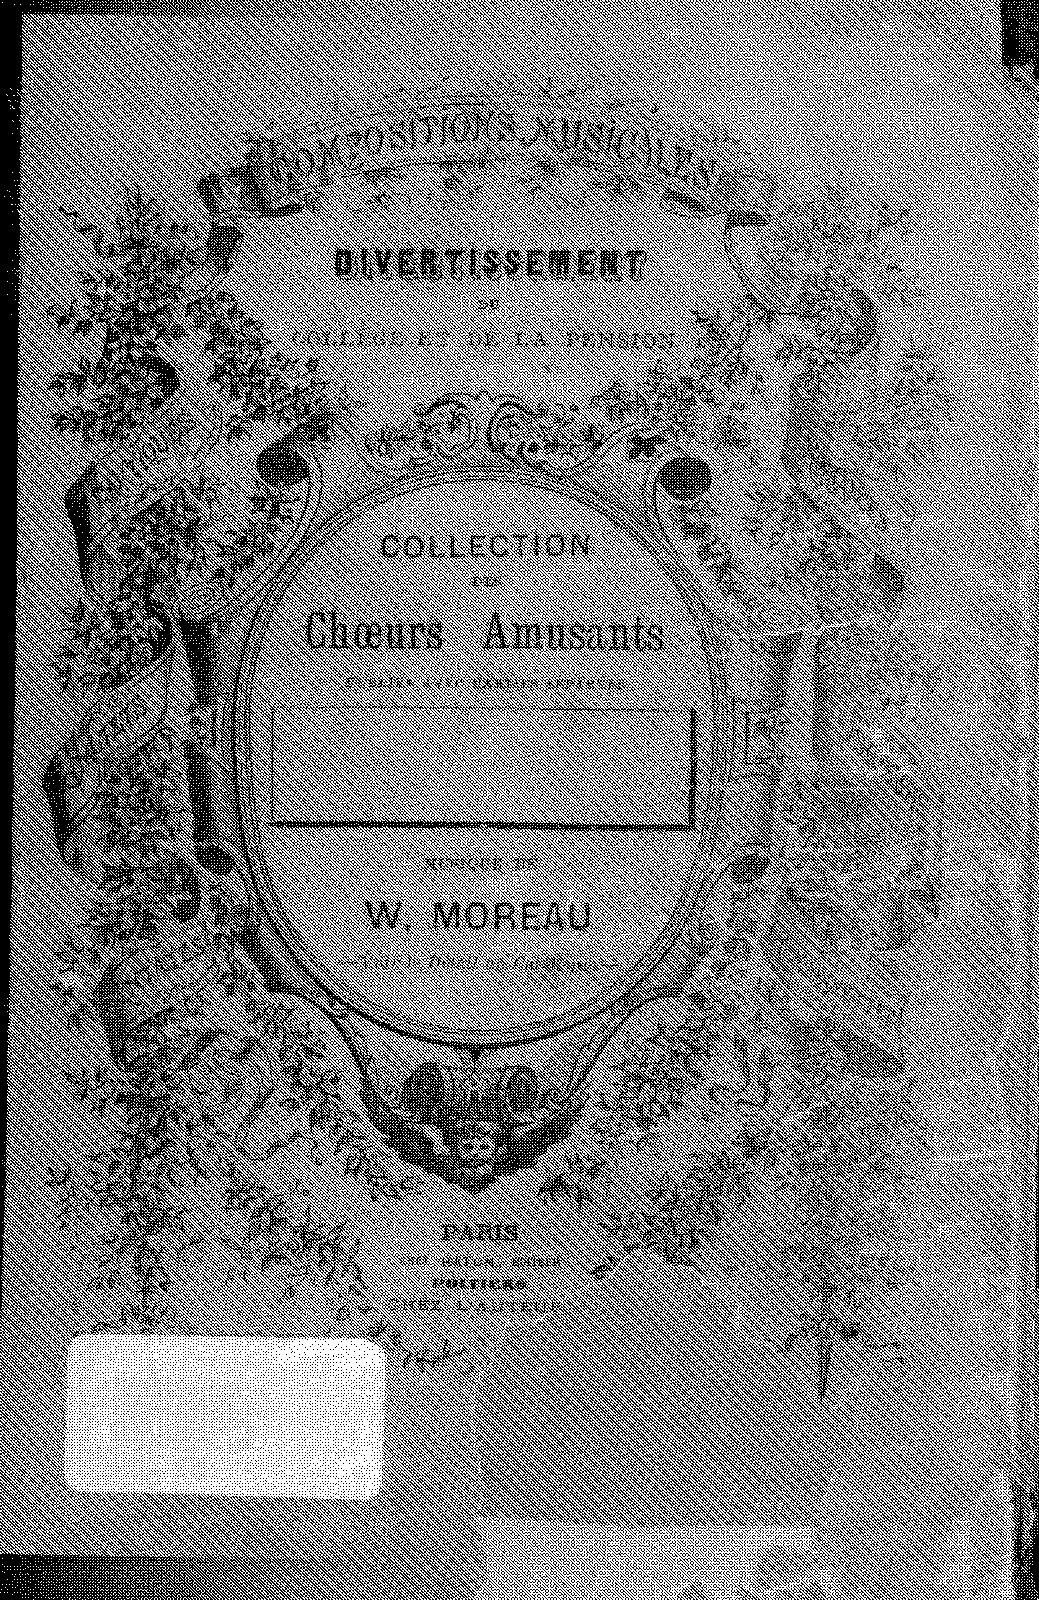 PMLP401050-Wulfran Moreau Collection de chœurs amusants (cover).pdf